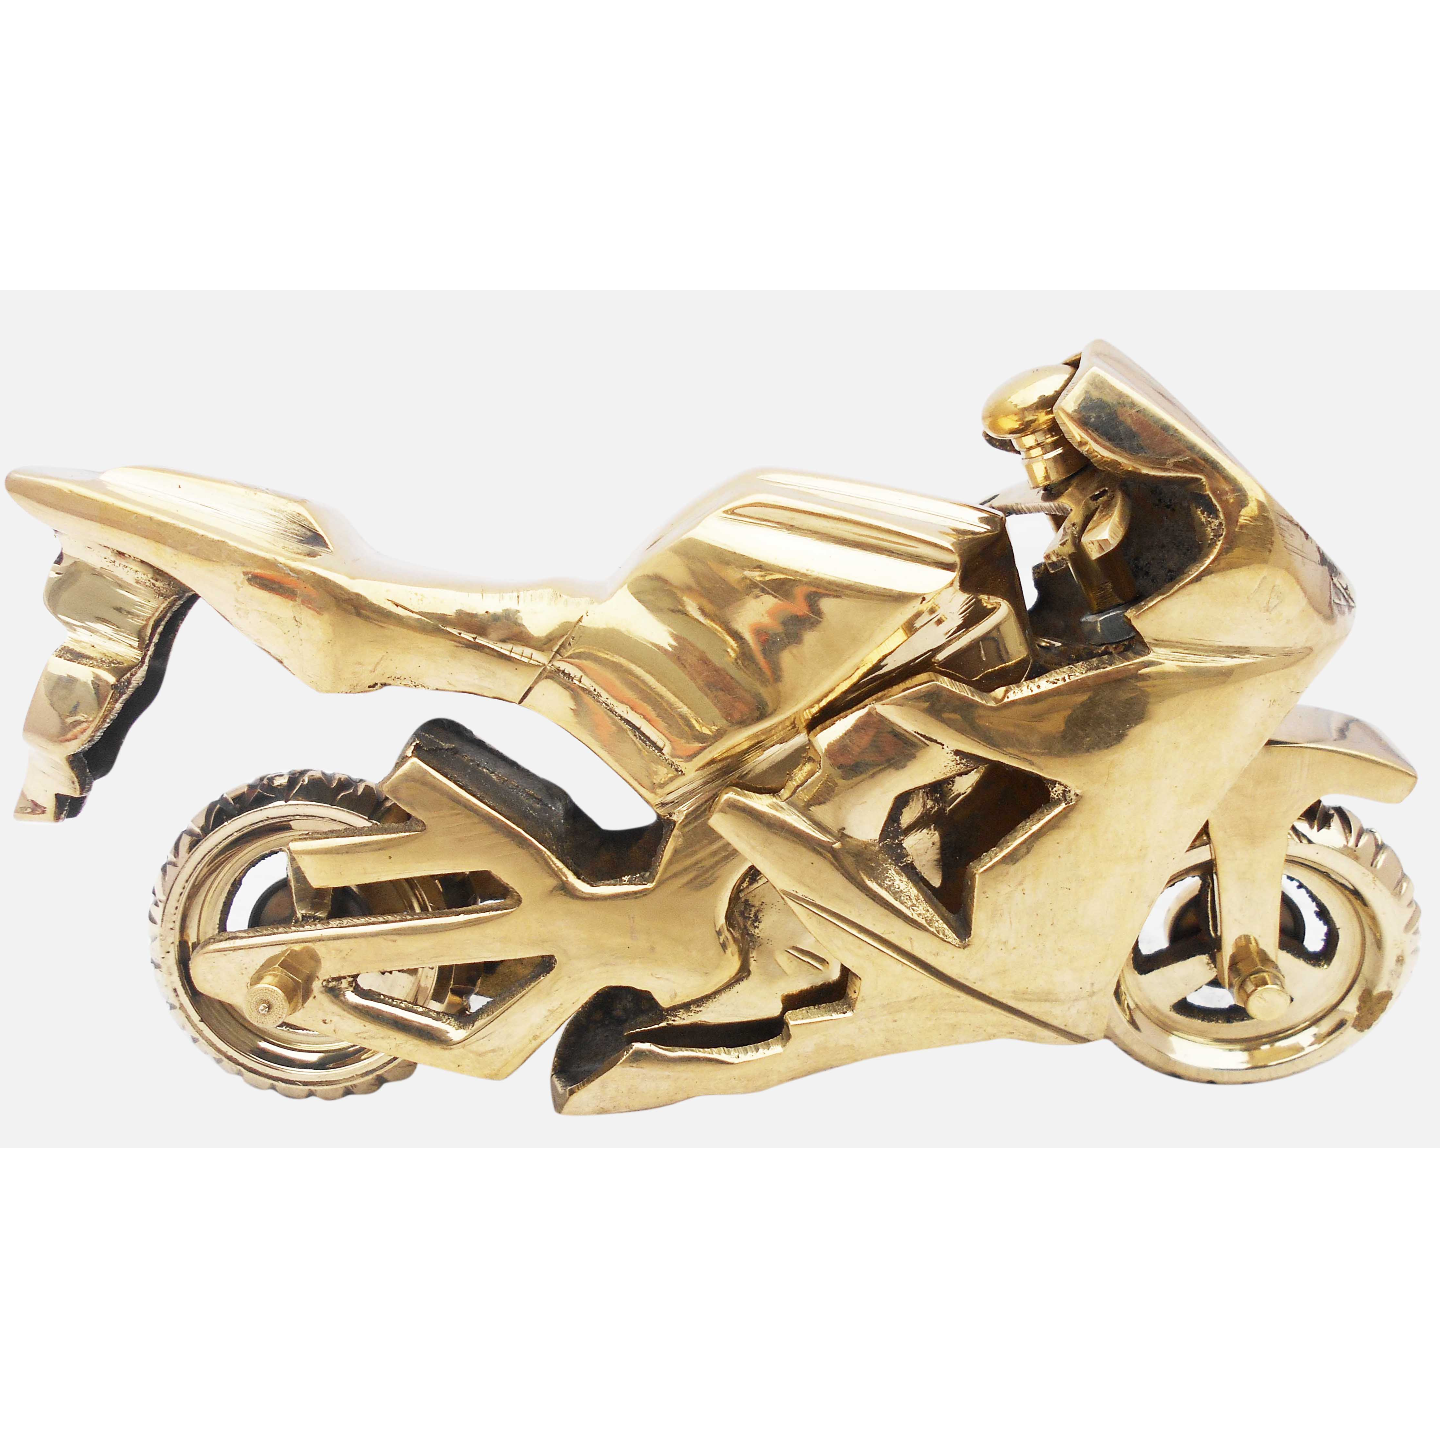 Brass Toy Bike R15 Miniature For Children Playing- 7*2*4 iInch  (Z328 C)